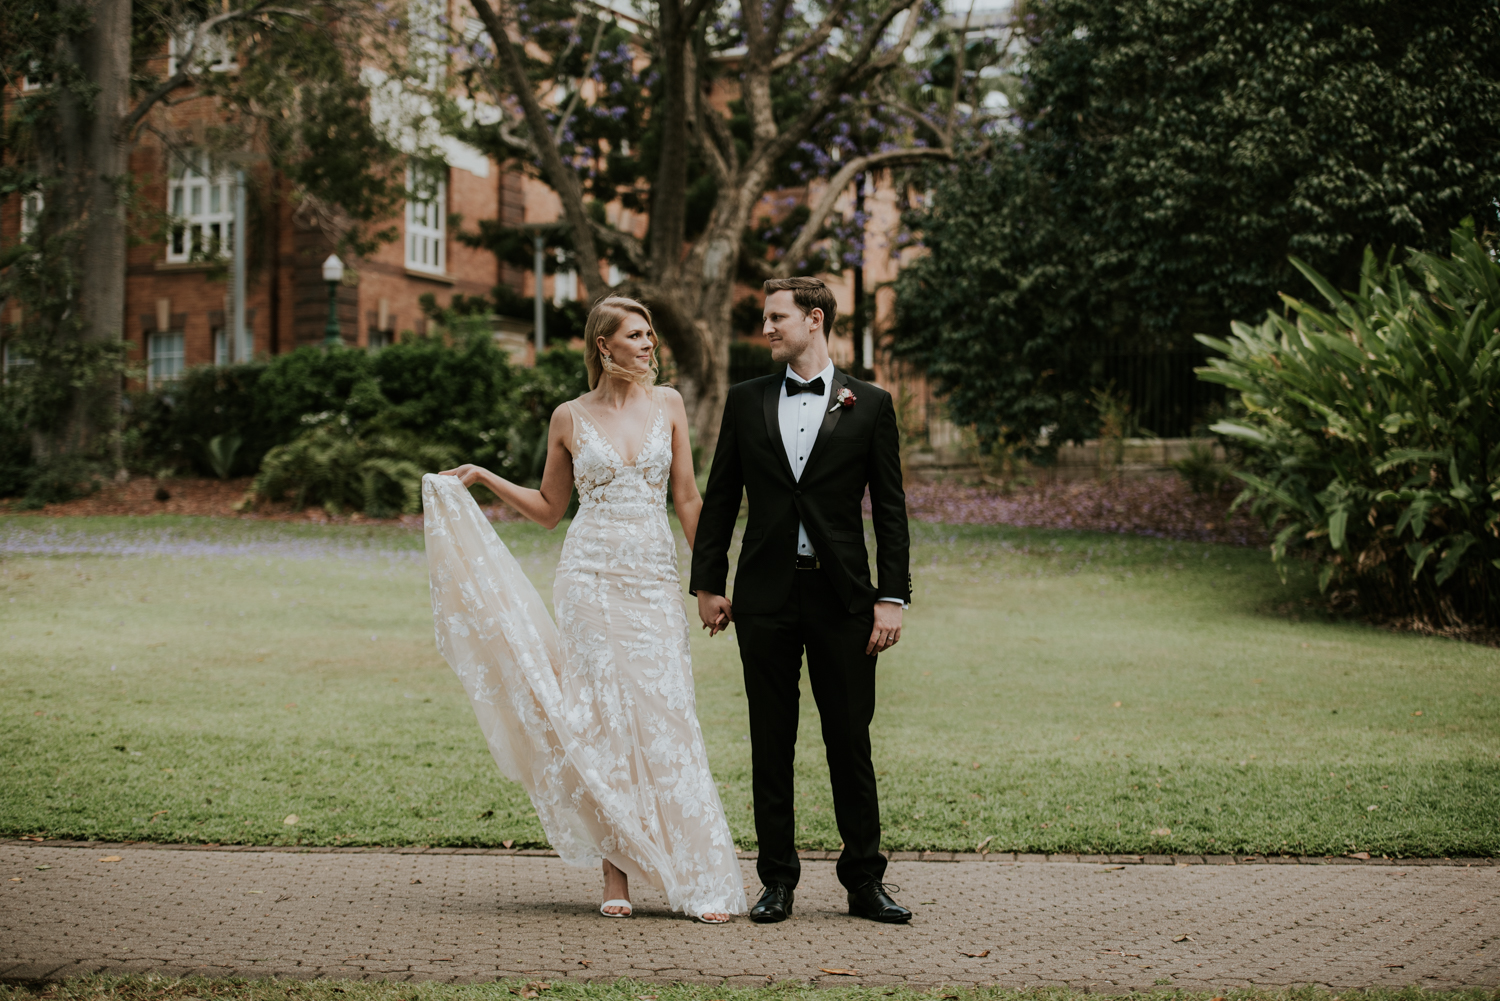 Brisbane Wedding Photographer | Engagement-Elopement Photography | Factory51-City Botantic Gardens Wedding-51.jpg